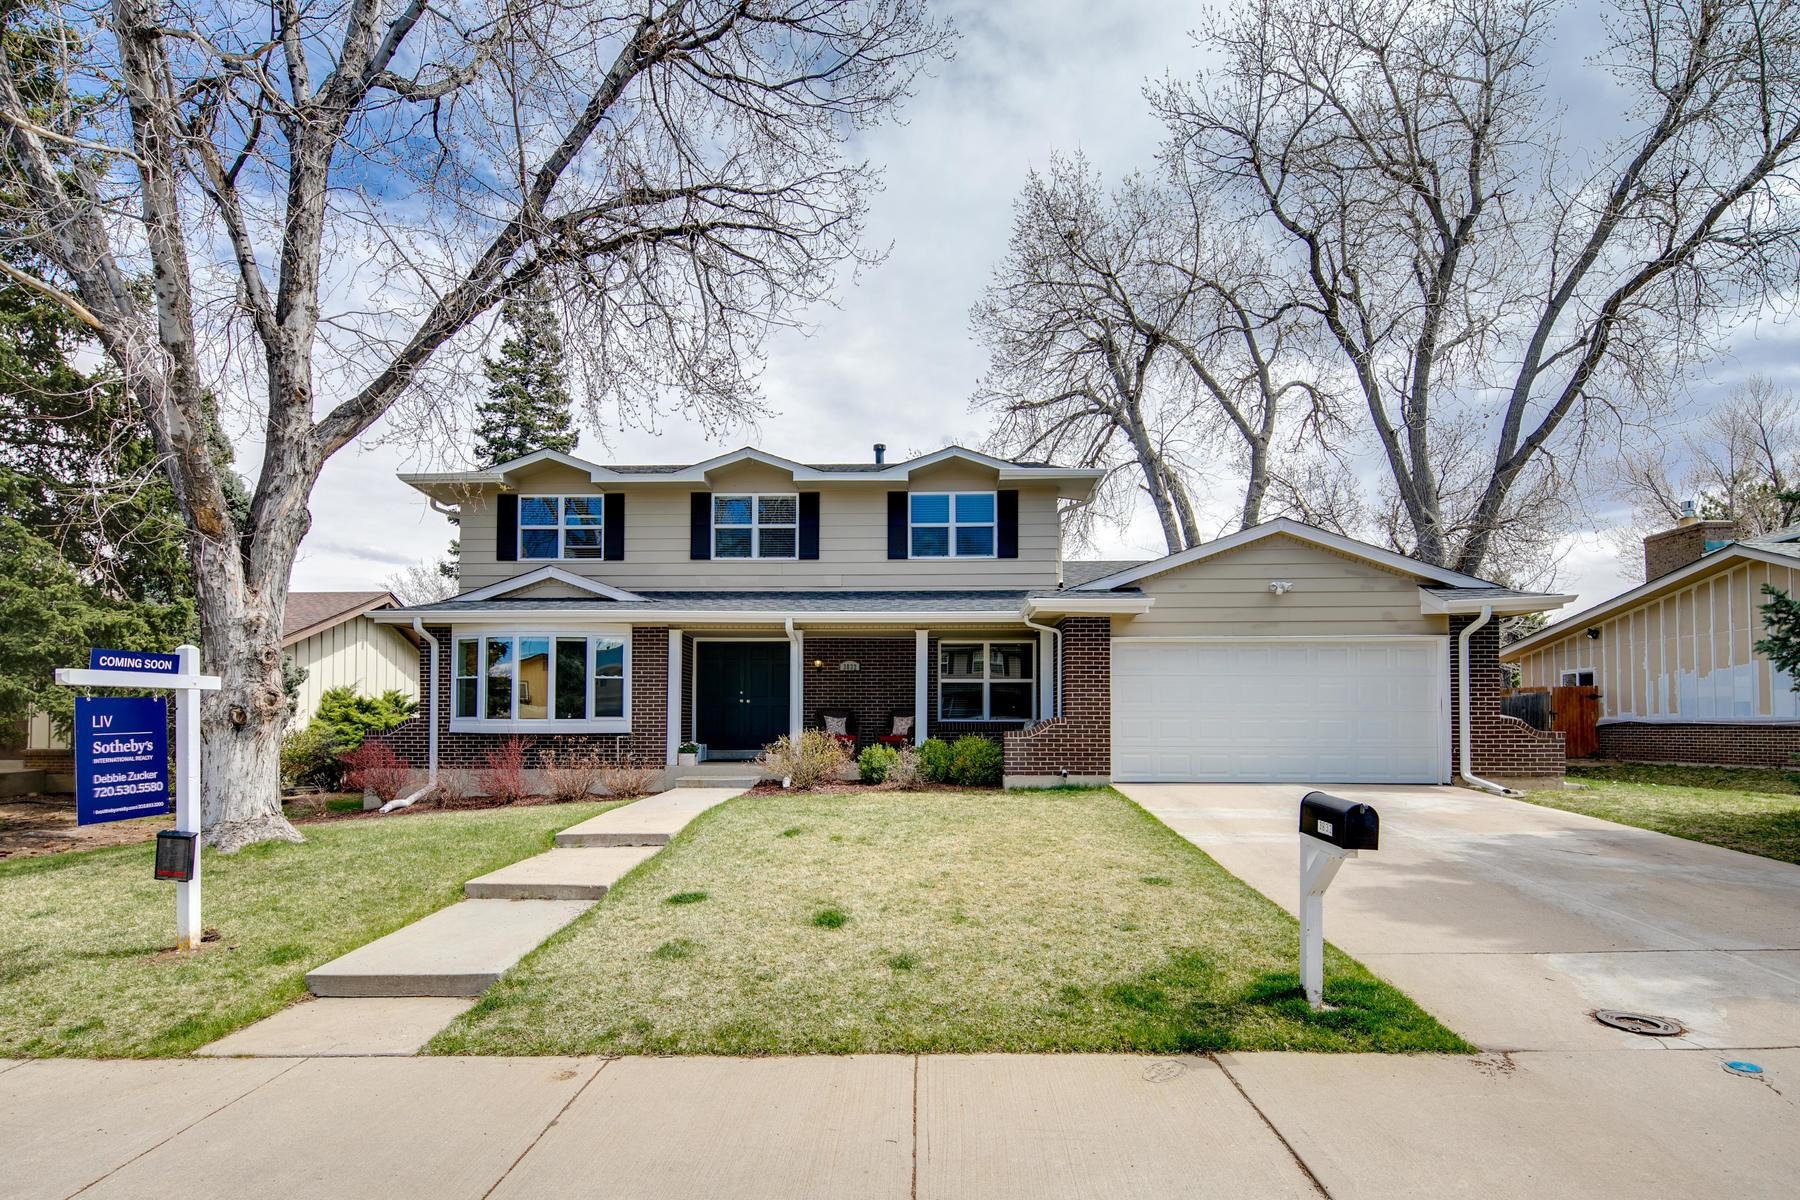 Single Family Home for Active at 3832 South Rosemary Way 3832 South Rosemary Way Denver, Colorado 80237 United States